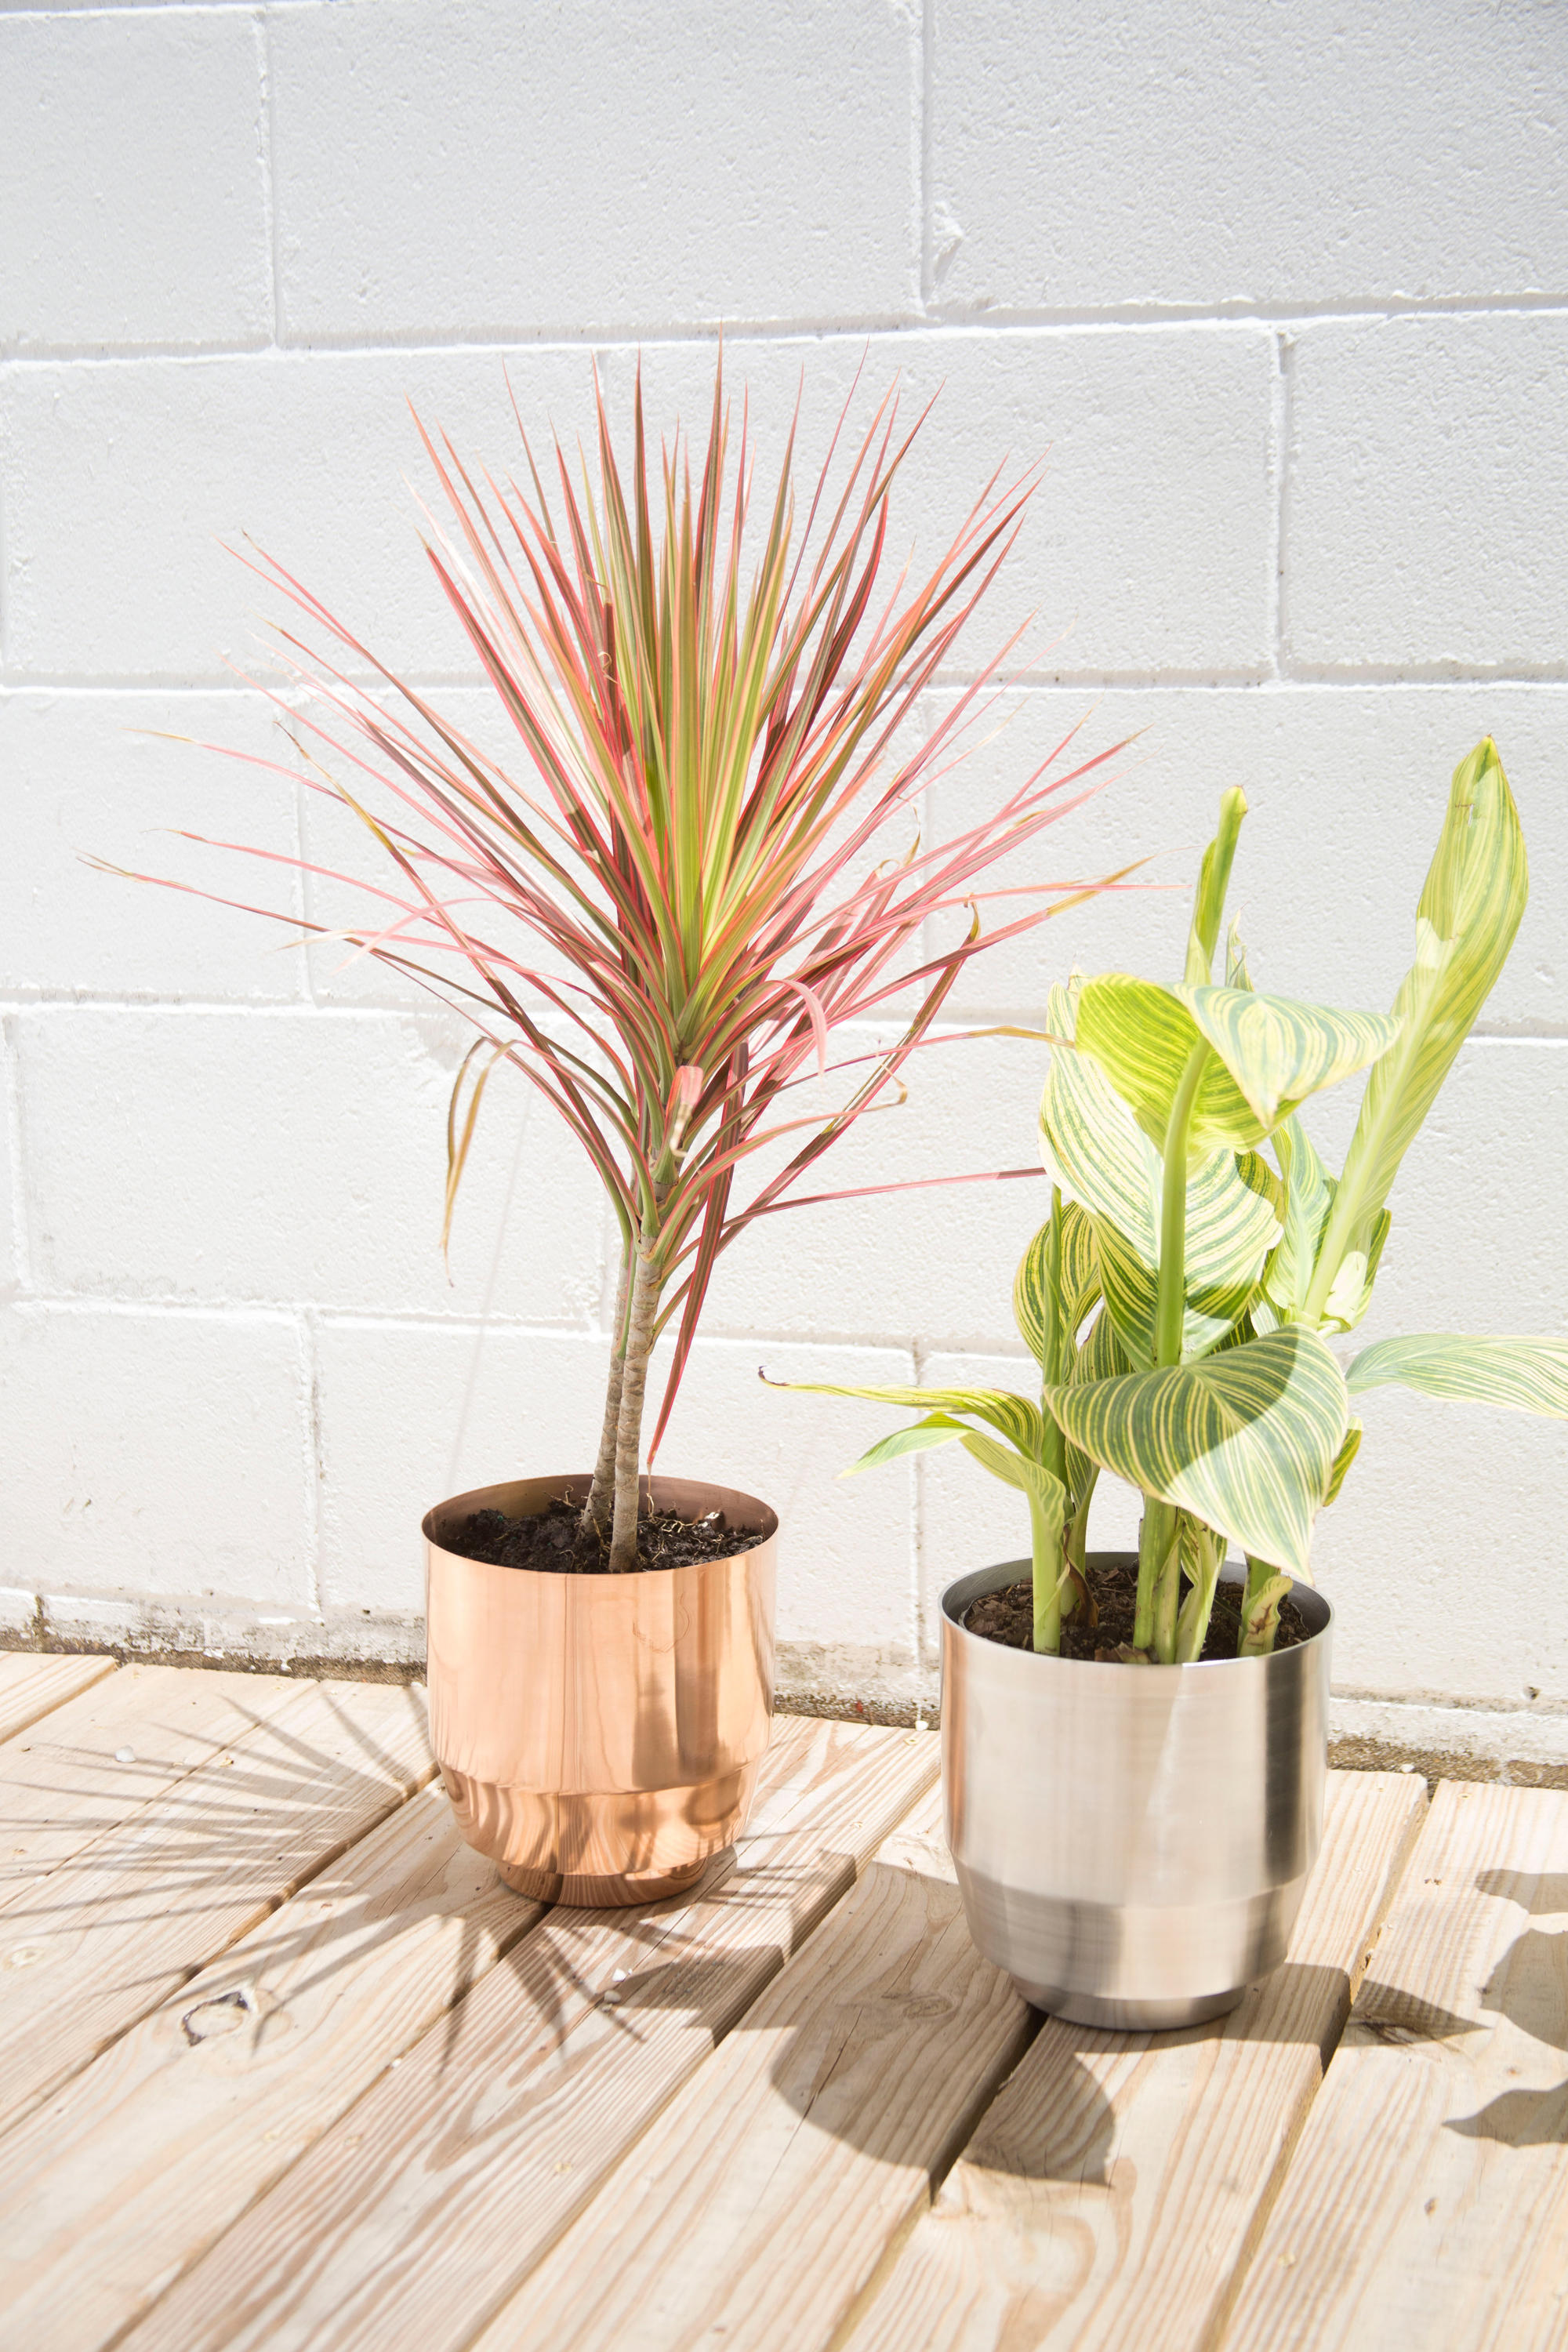 INDOOR SPUN BOWL 8  COPPER  Plant pots from Yield  Architonic